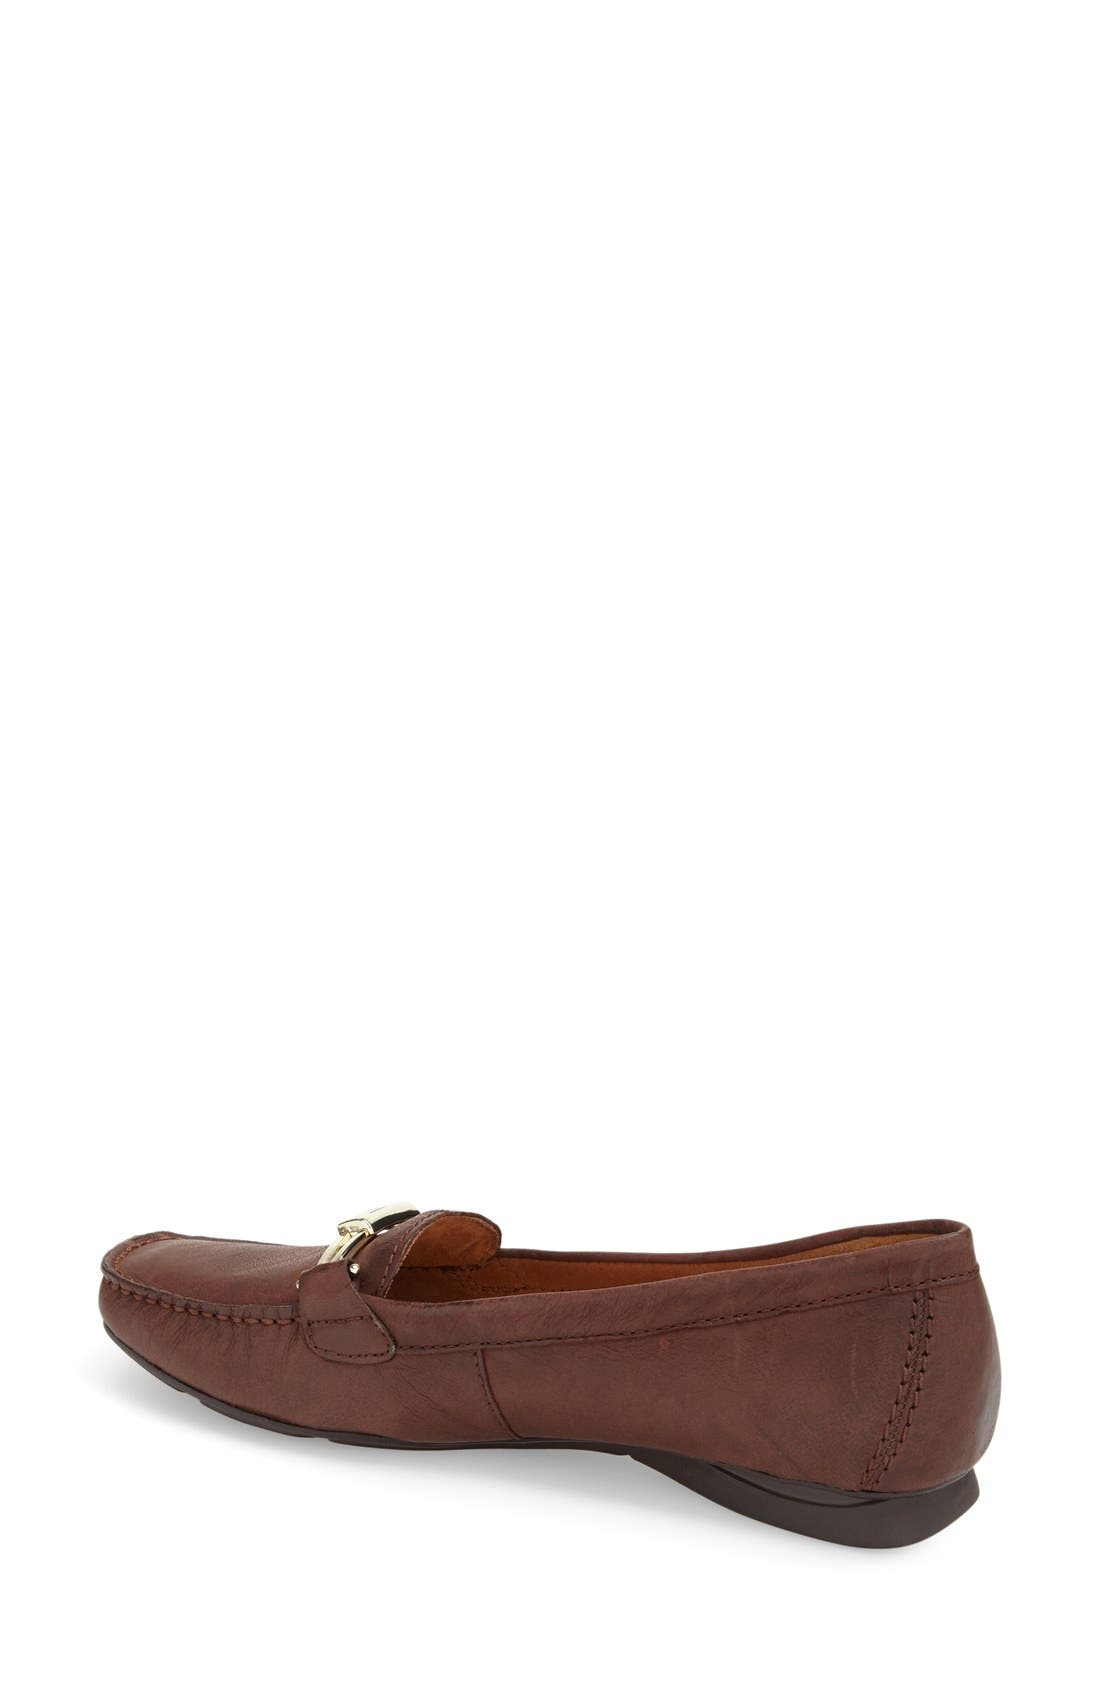 'Saturday' Loafer,                             Alternate thumbnail 9, color,